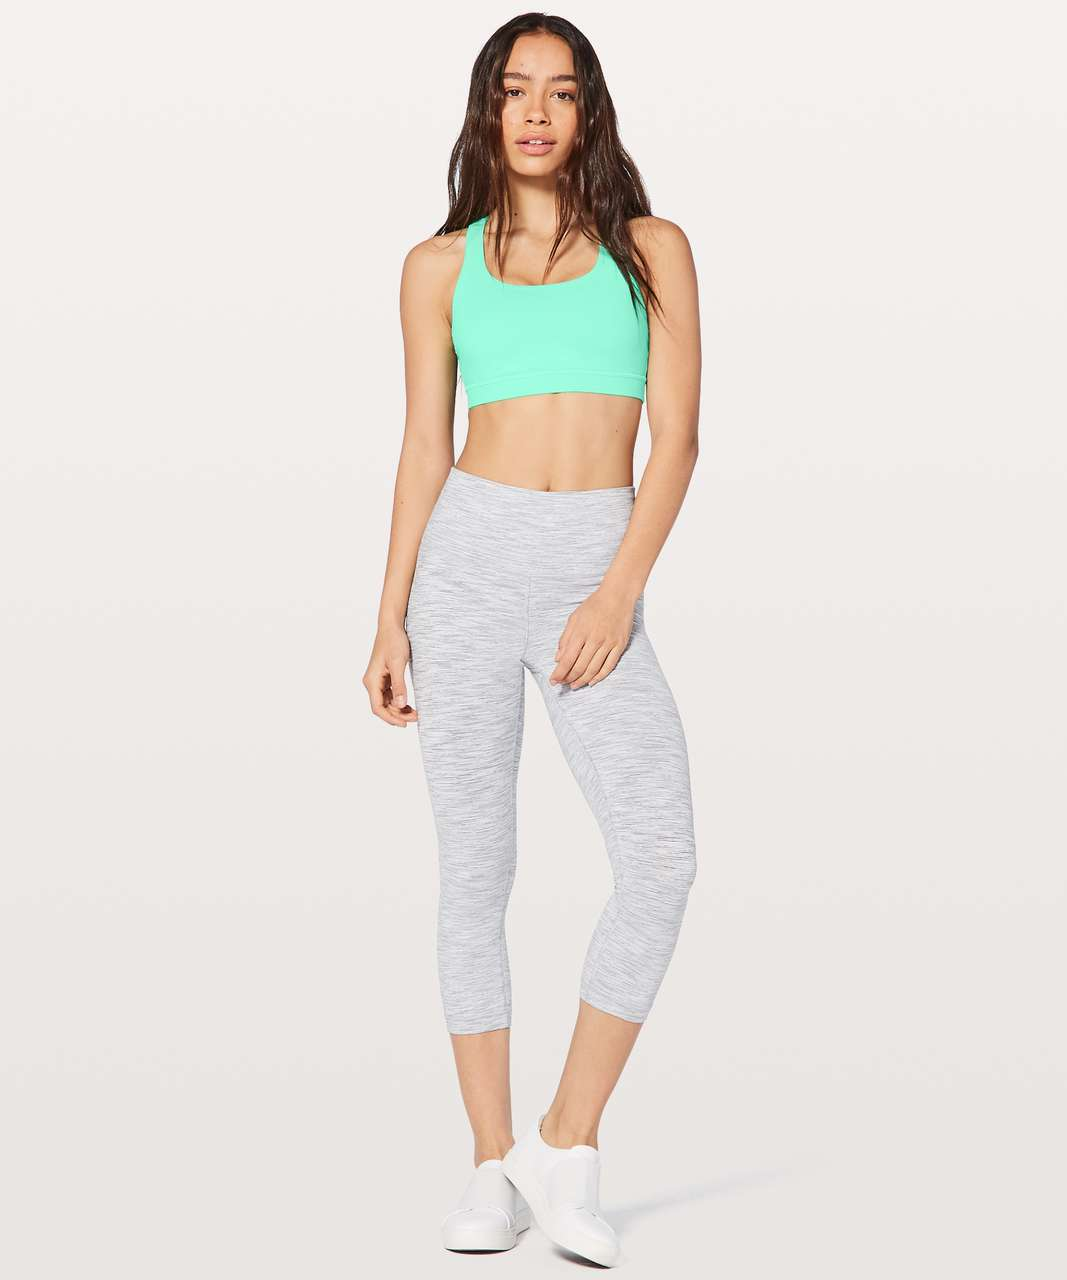 Lululemon Energy Bra - Major Mint